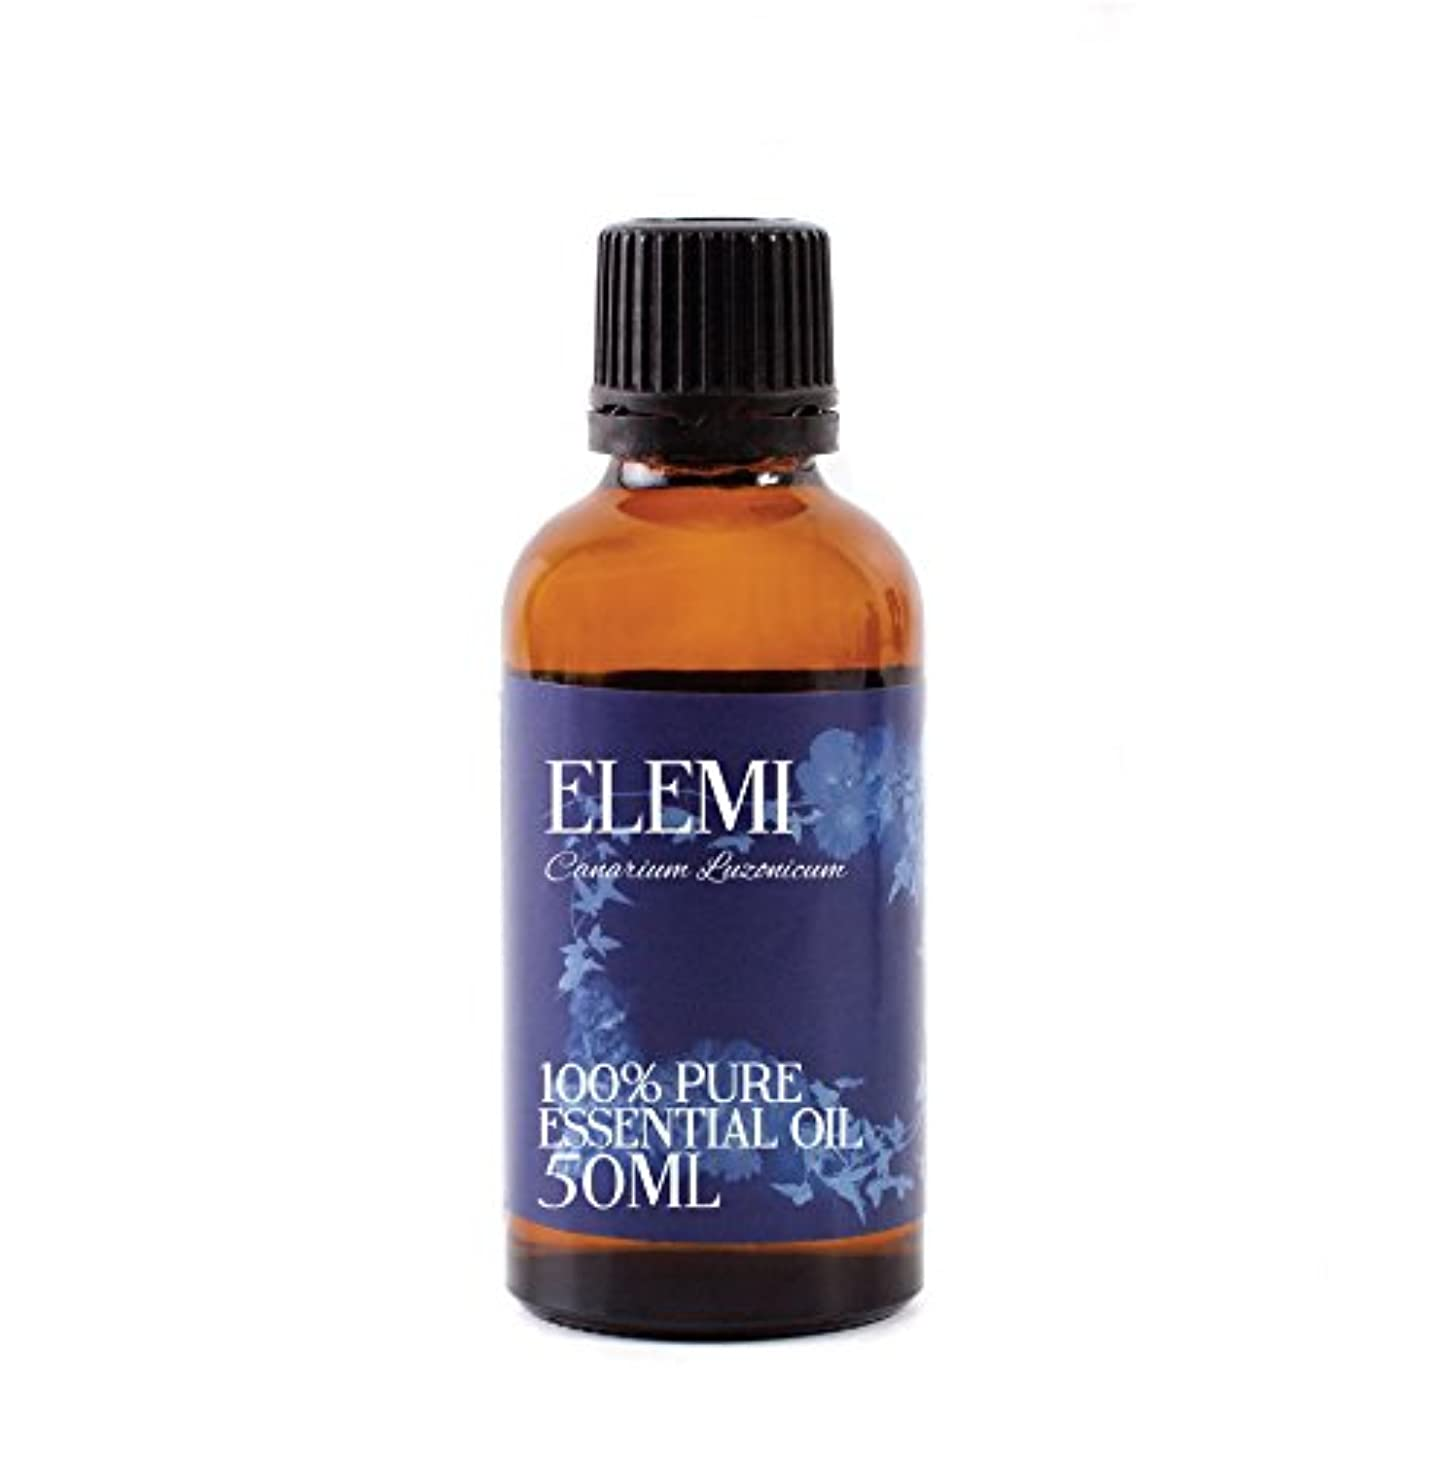 予防接種無人無視できるMystic Moments | Elemi Essential Oil - 50ml - 100% Pure